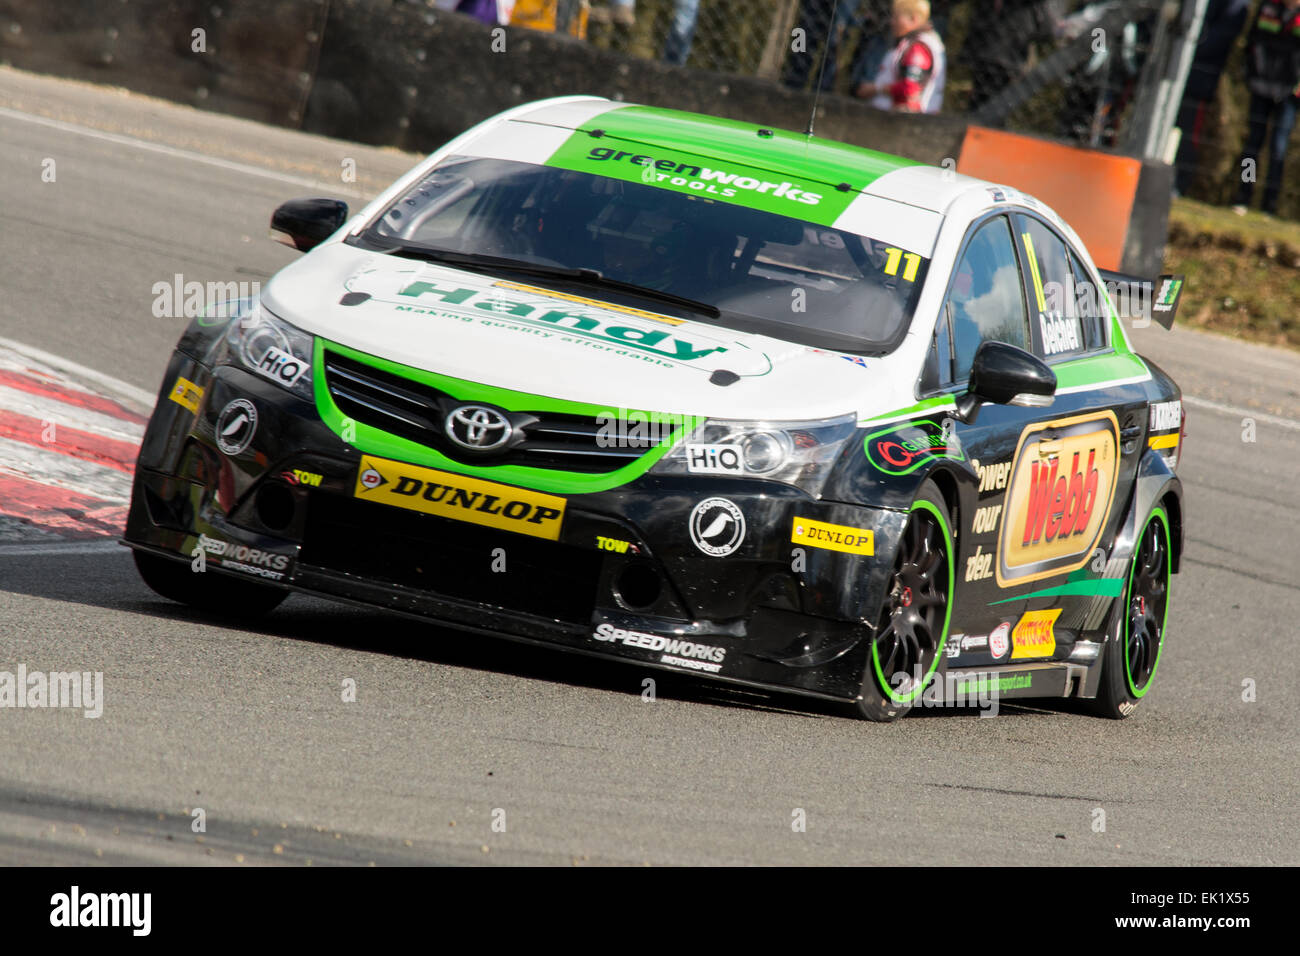 Fawkham, UK. 05th Apr, 2015. Dunlop MSA British Touring Car Championship at Brands Hatch on April 5, 2015 in FAWKHAM, - Stock Image